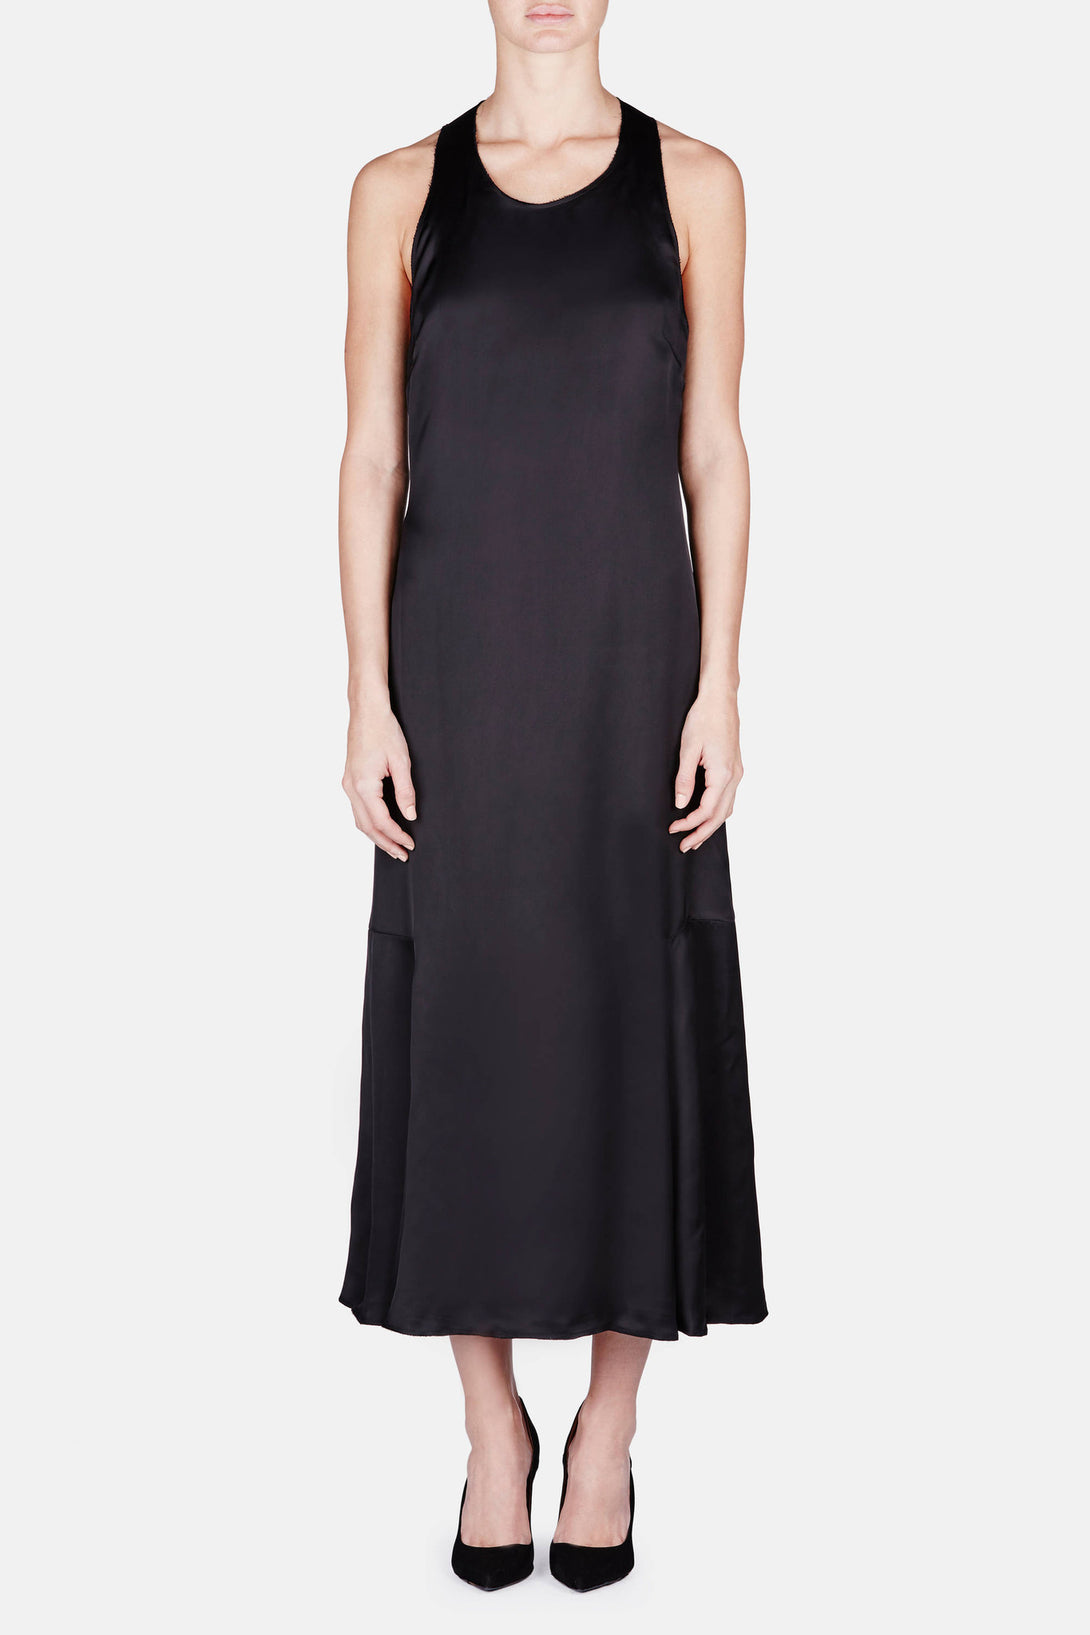 Feren Dress - Black